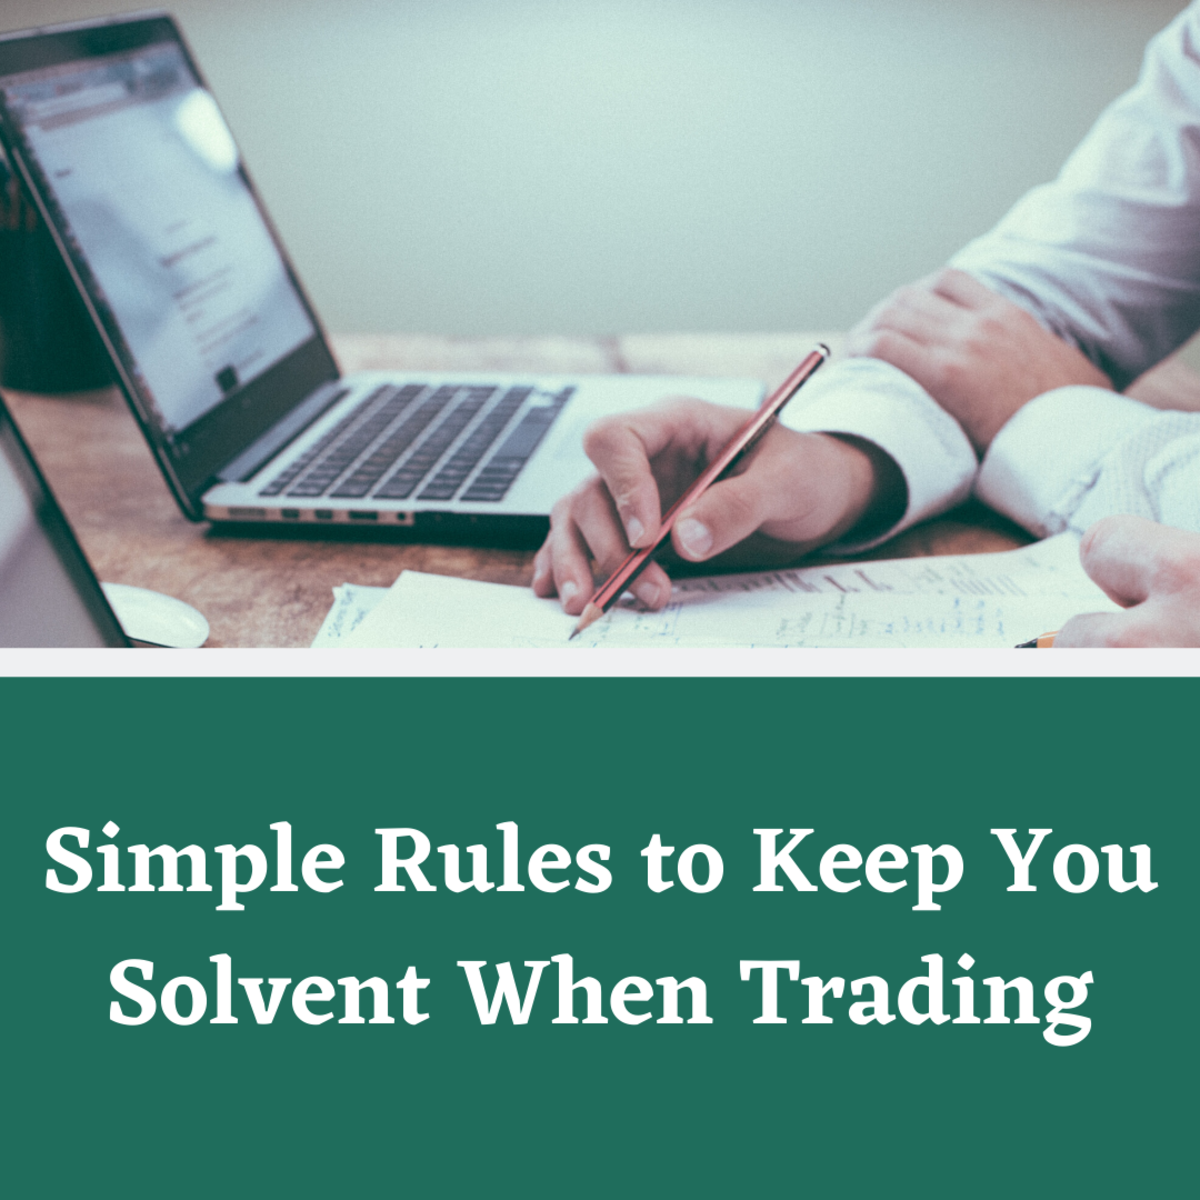 These tips should help prevent you from losing everything before you get to profit.